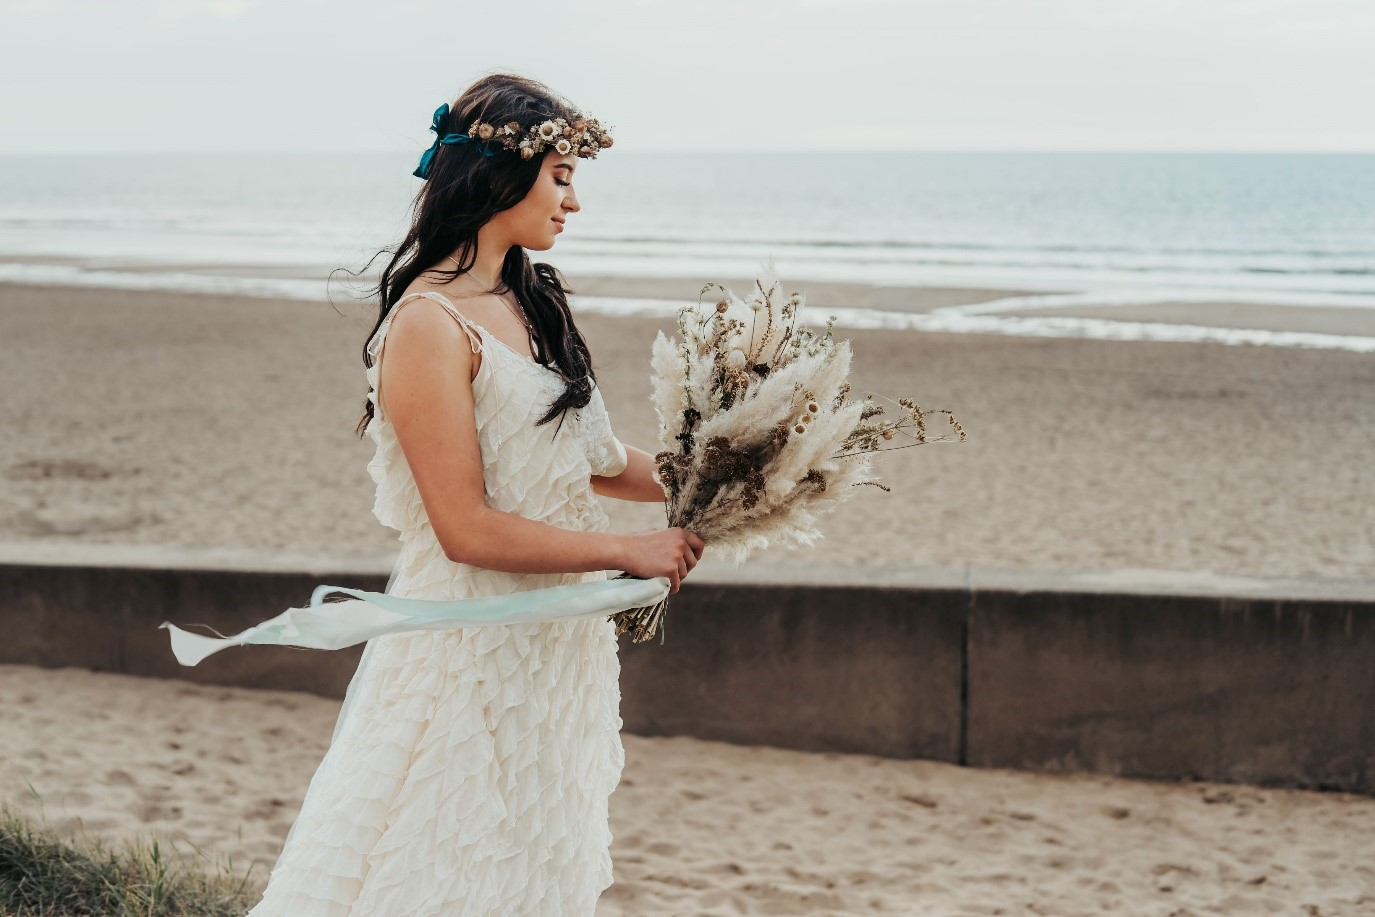 beach elopement - beach wedding - eco friendly wedding -tempest themed wedding - unique wedding bouquet - dried wedding flowers